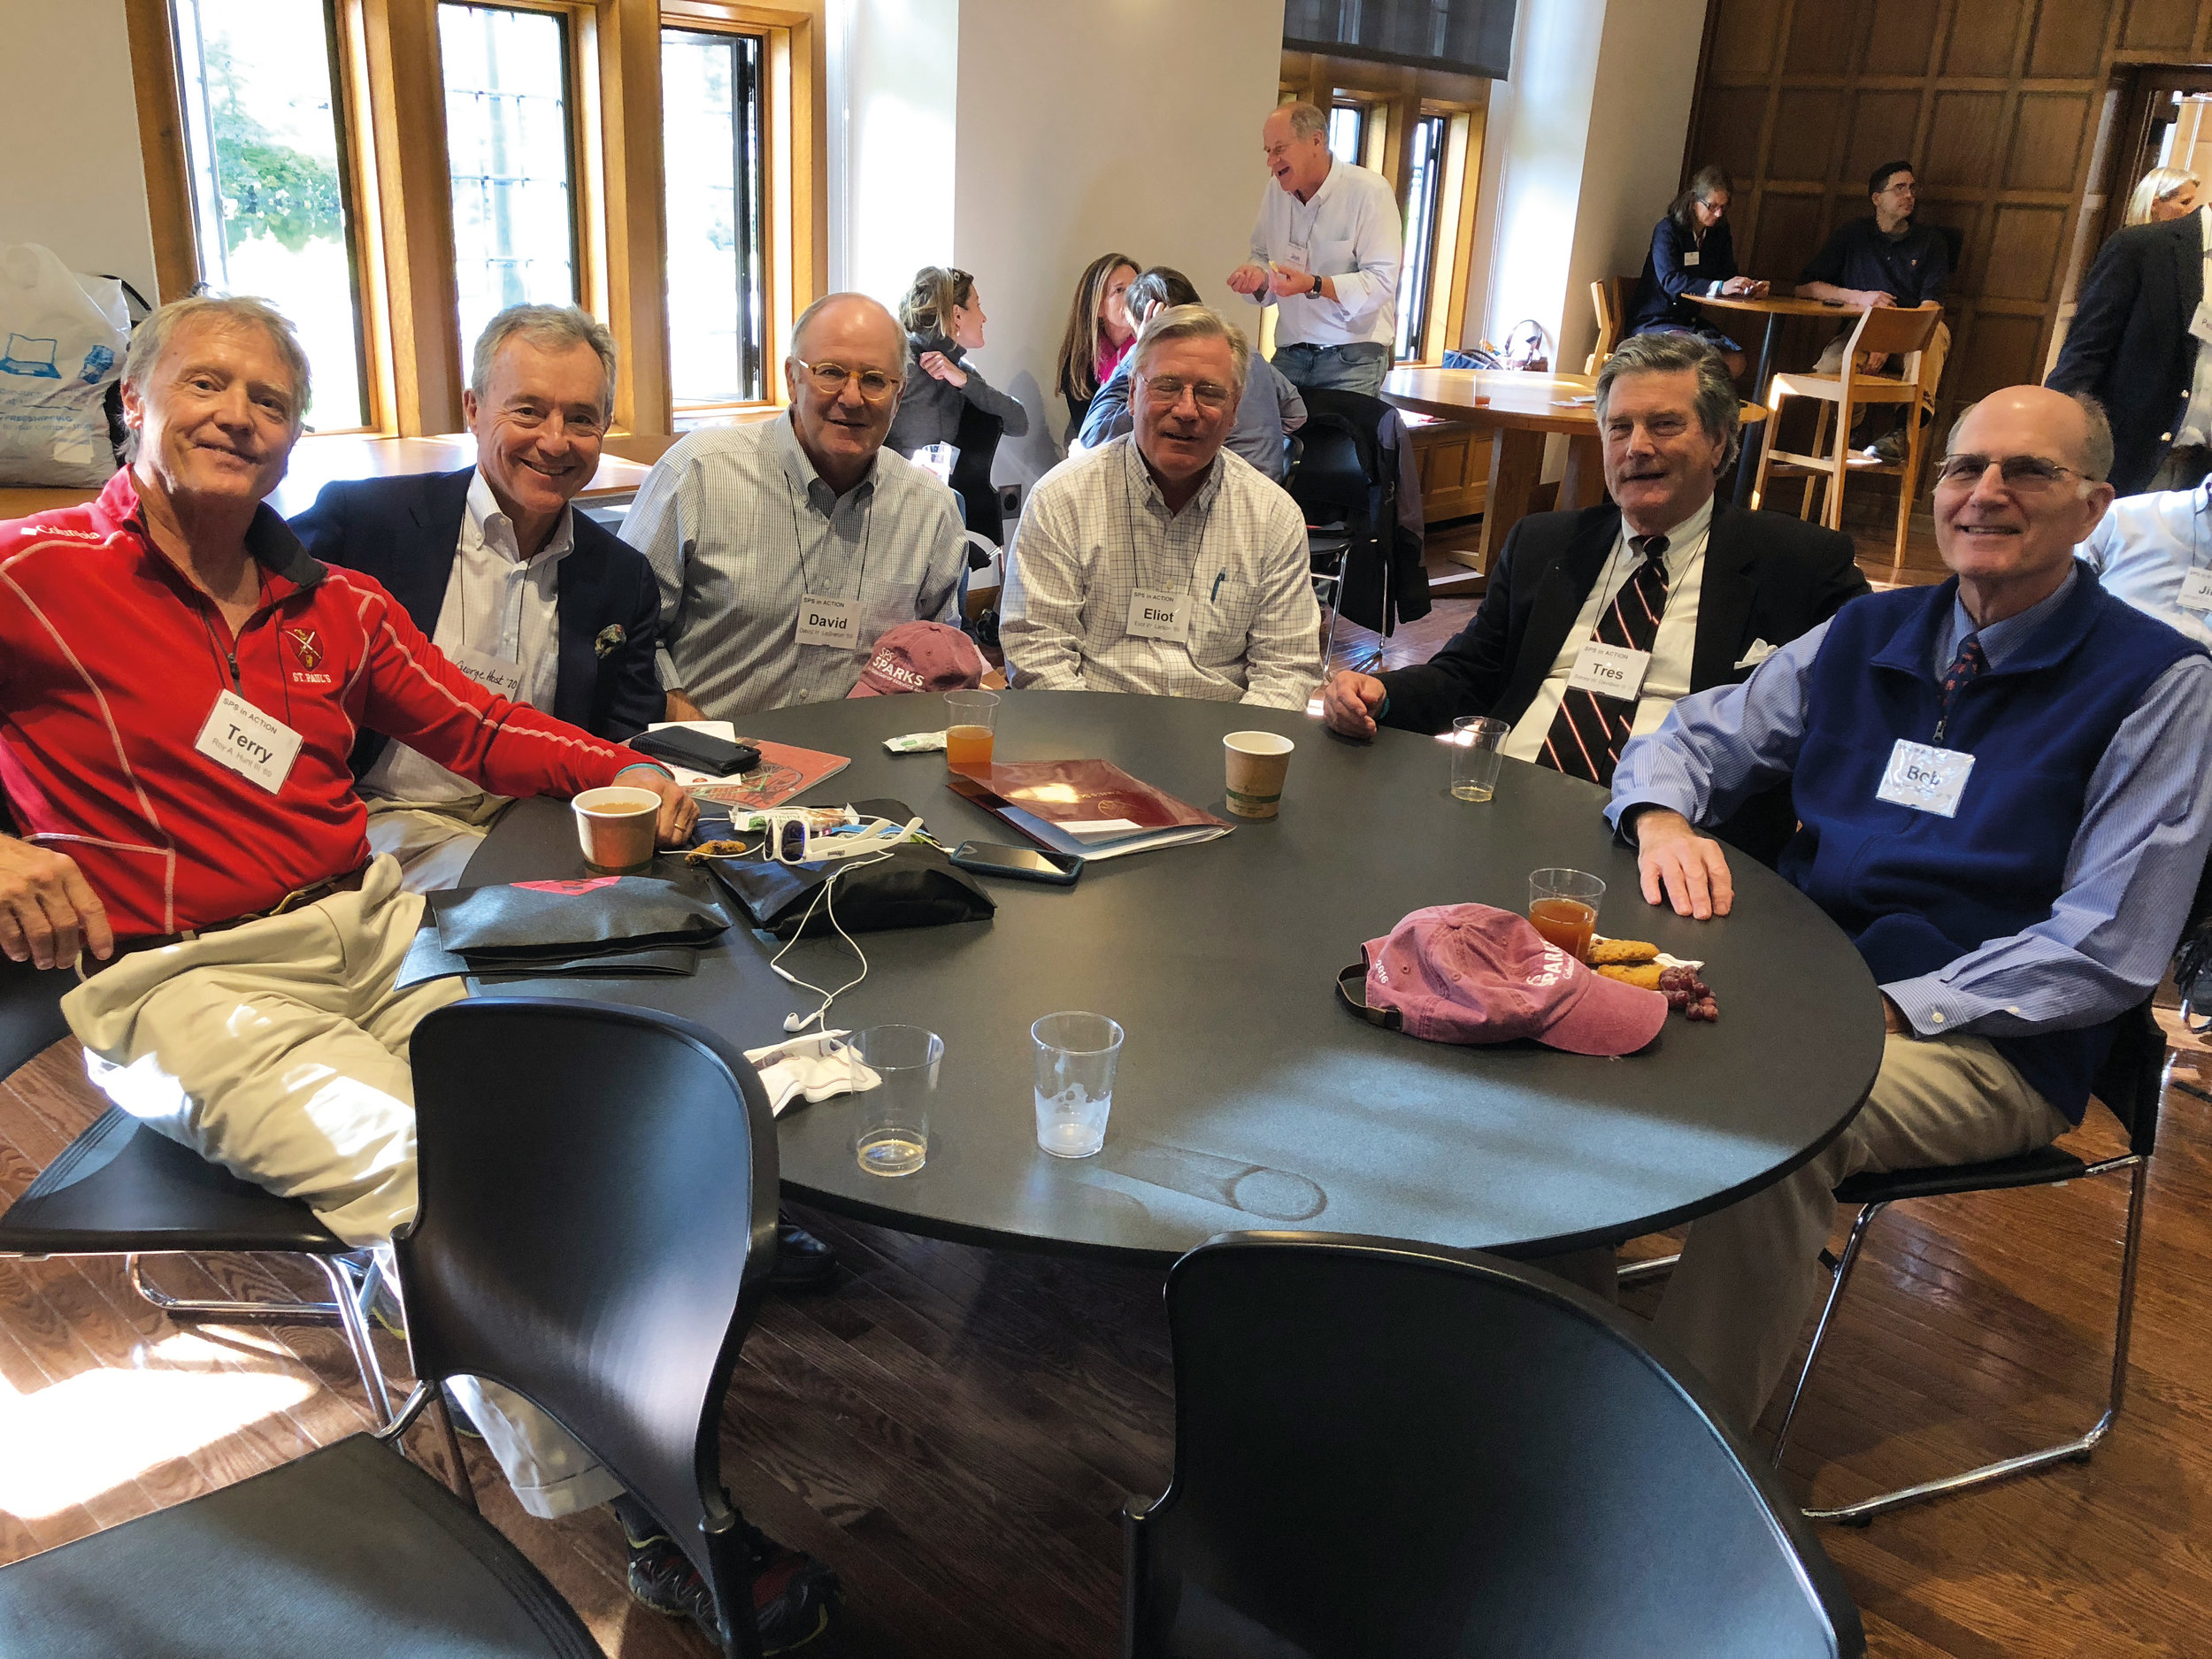 (L. to r.) Terry Hunt '69, George Host '70, Dave LeBreton '69, Eliot Larson '69, Tres Davidson '70, and Bob Rettew '69 at SPS in Action weekend.